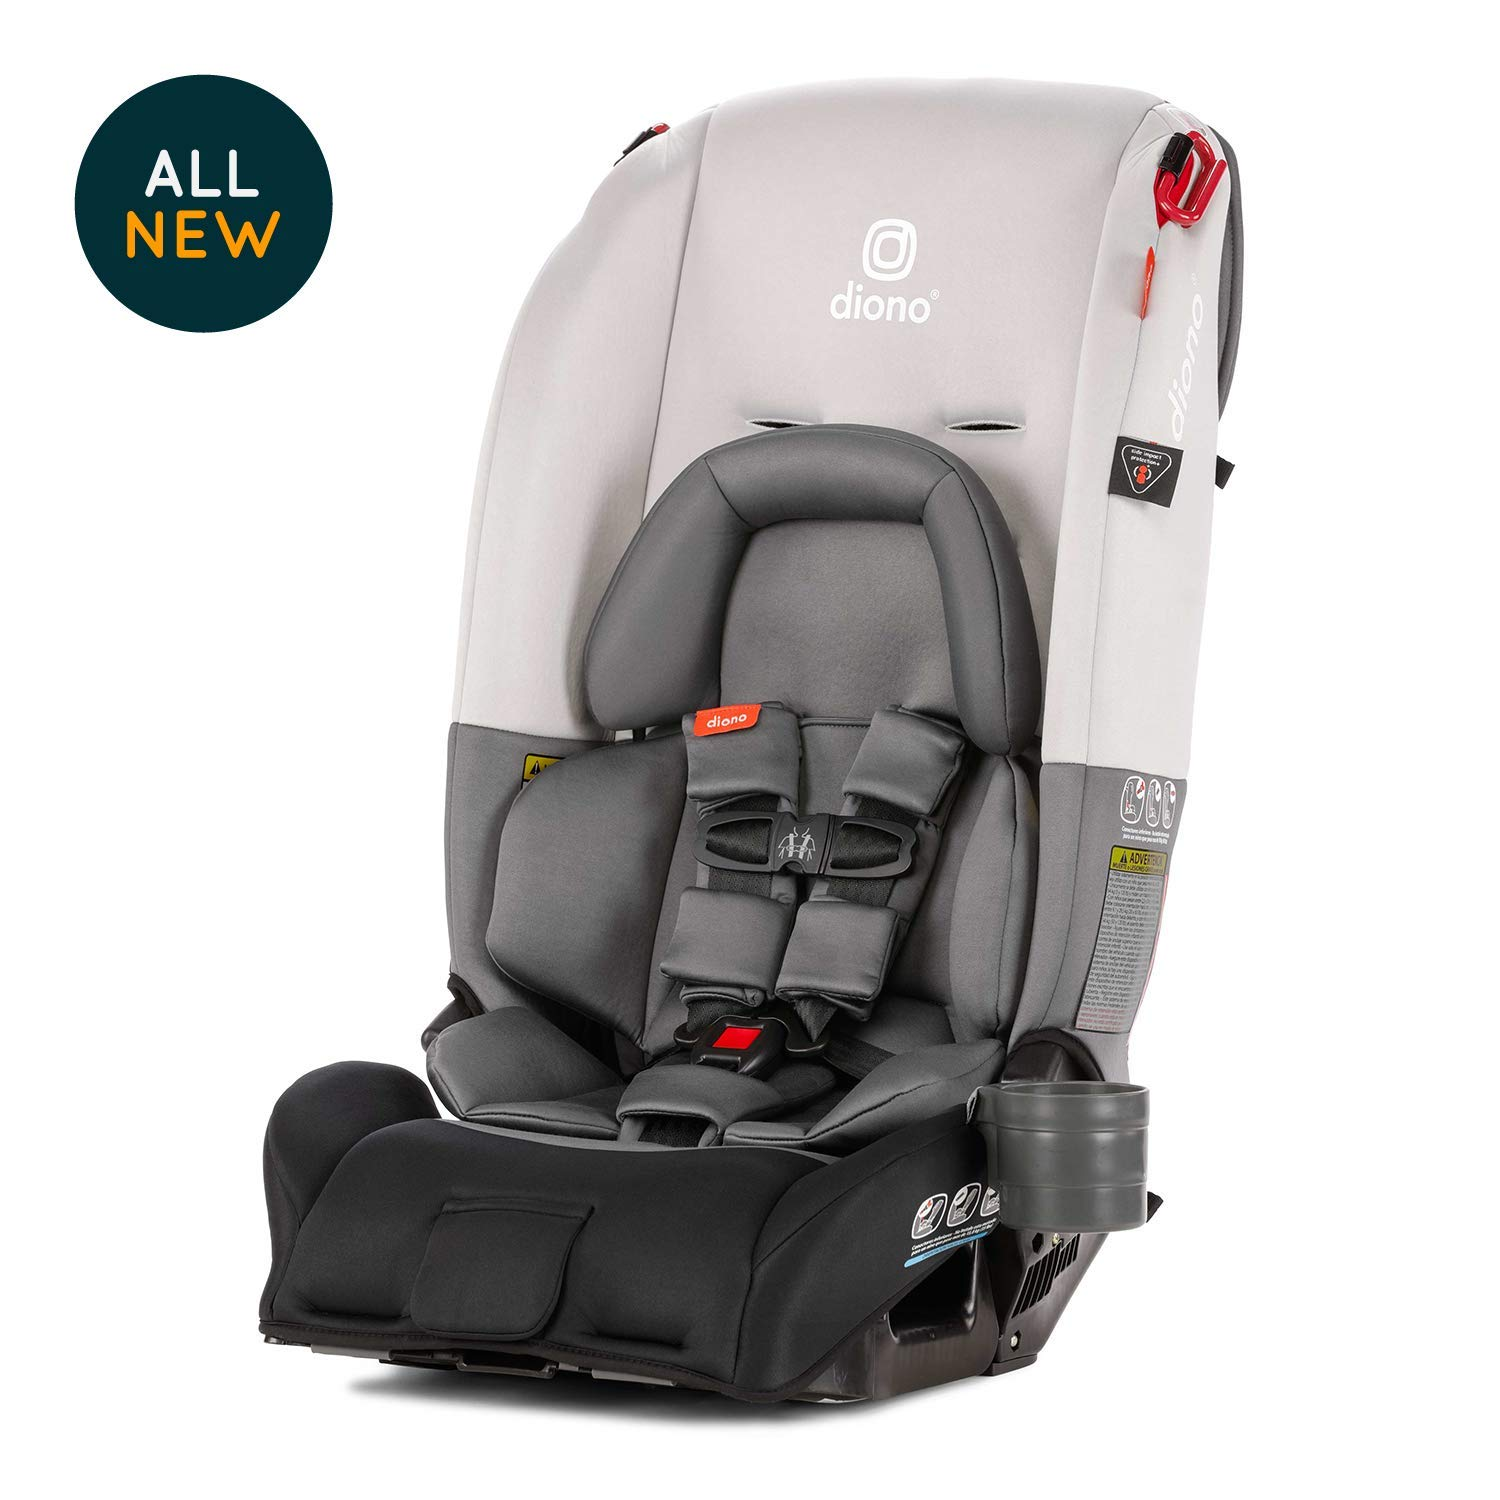 Diono Radian 3r All In One Convertible Car Seat Extended